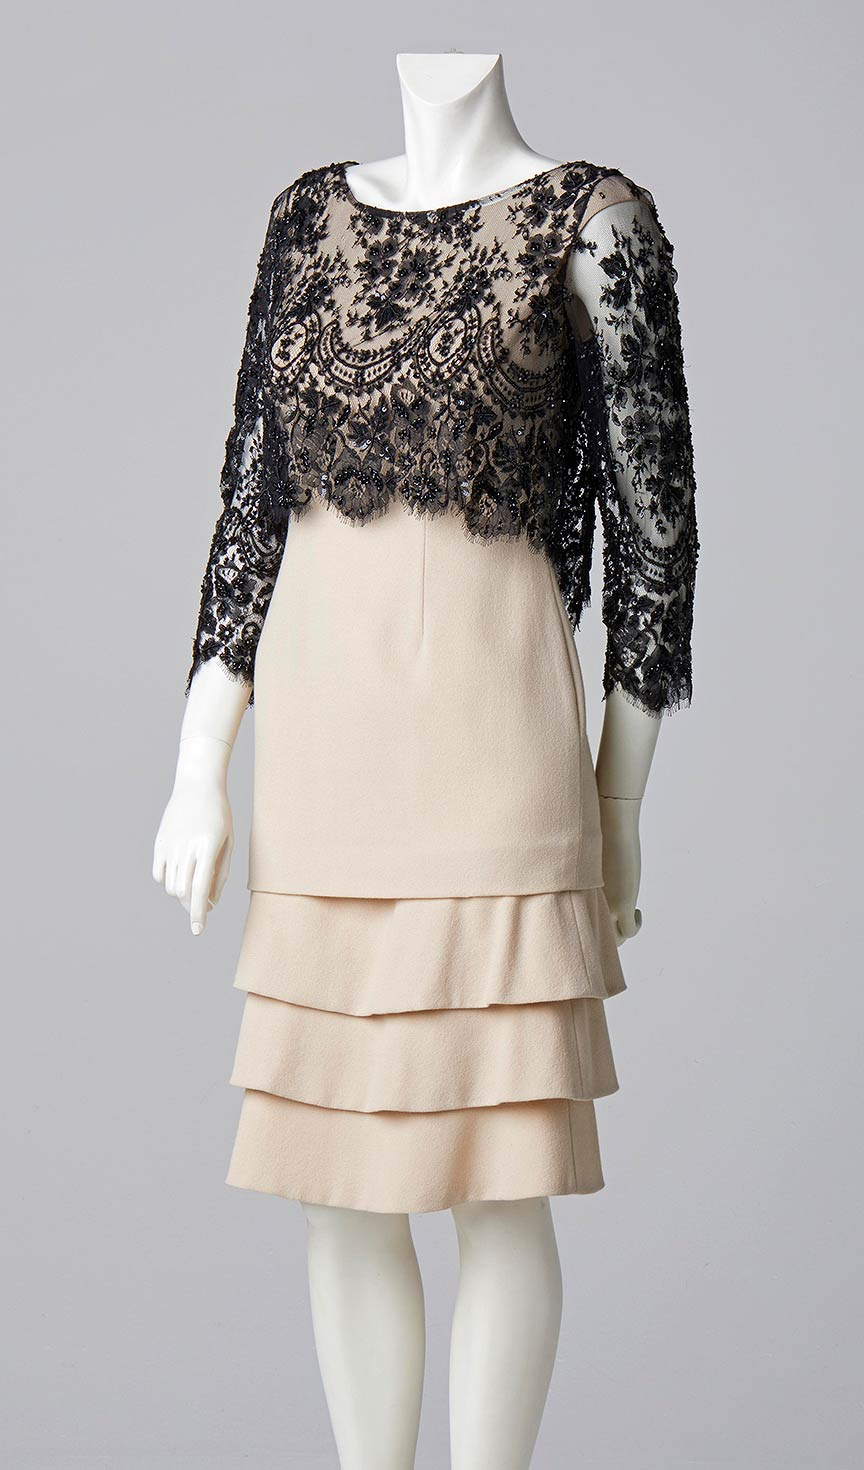 couture allison rodger designer london wool crepe tiered dress